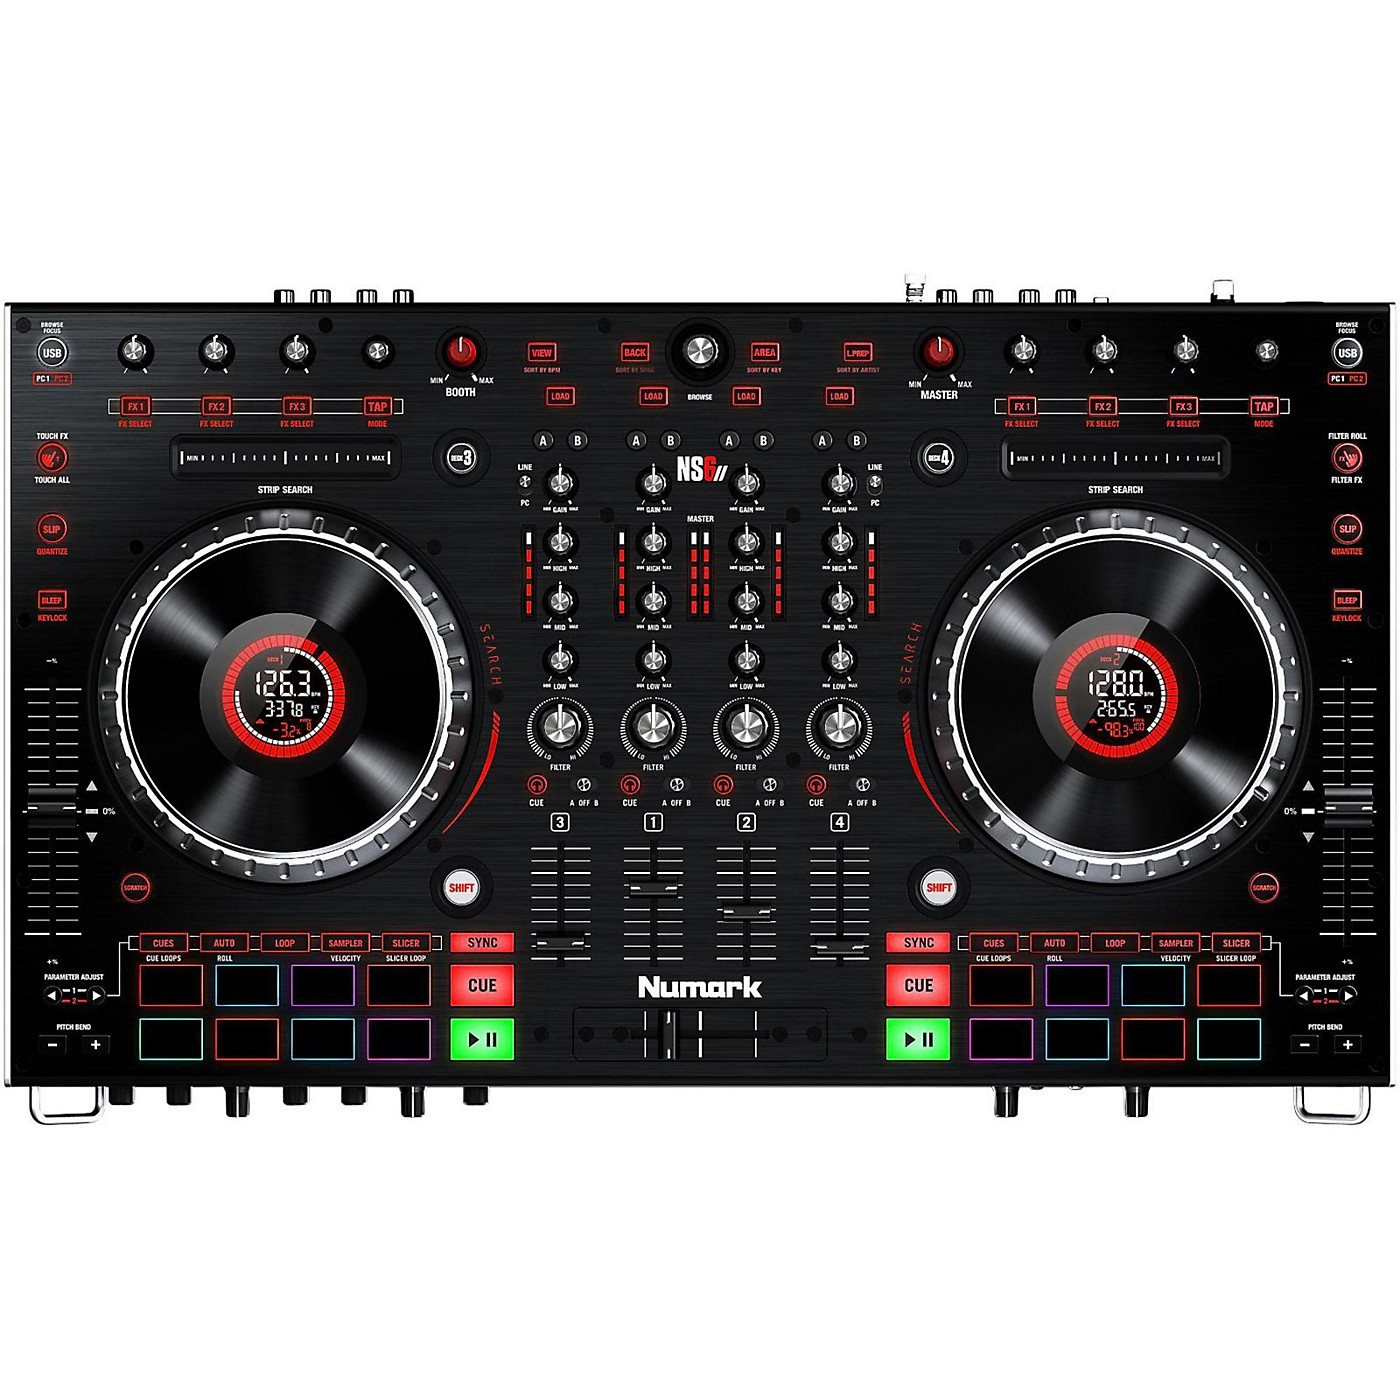 Numark NS6II Premium 4-Channel Serato DJ Controller with Dual USB and HD Color Displays thumbnail